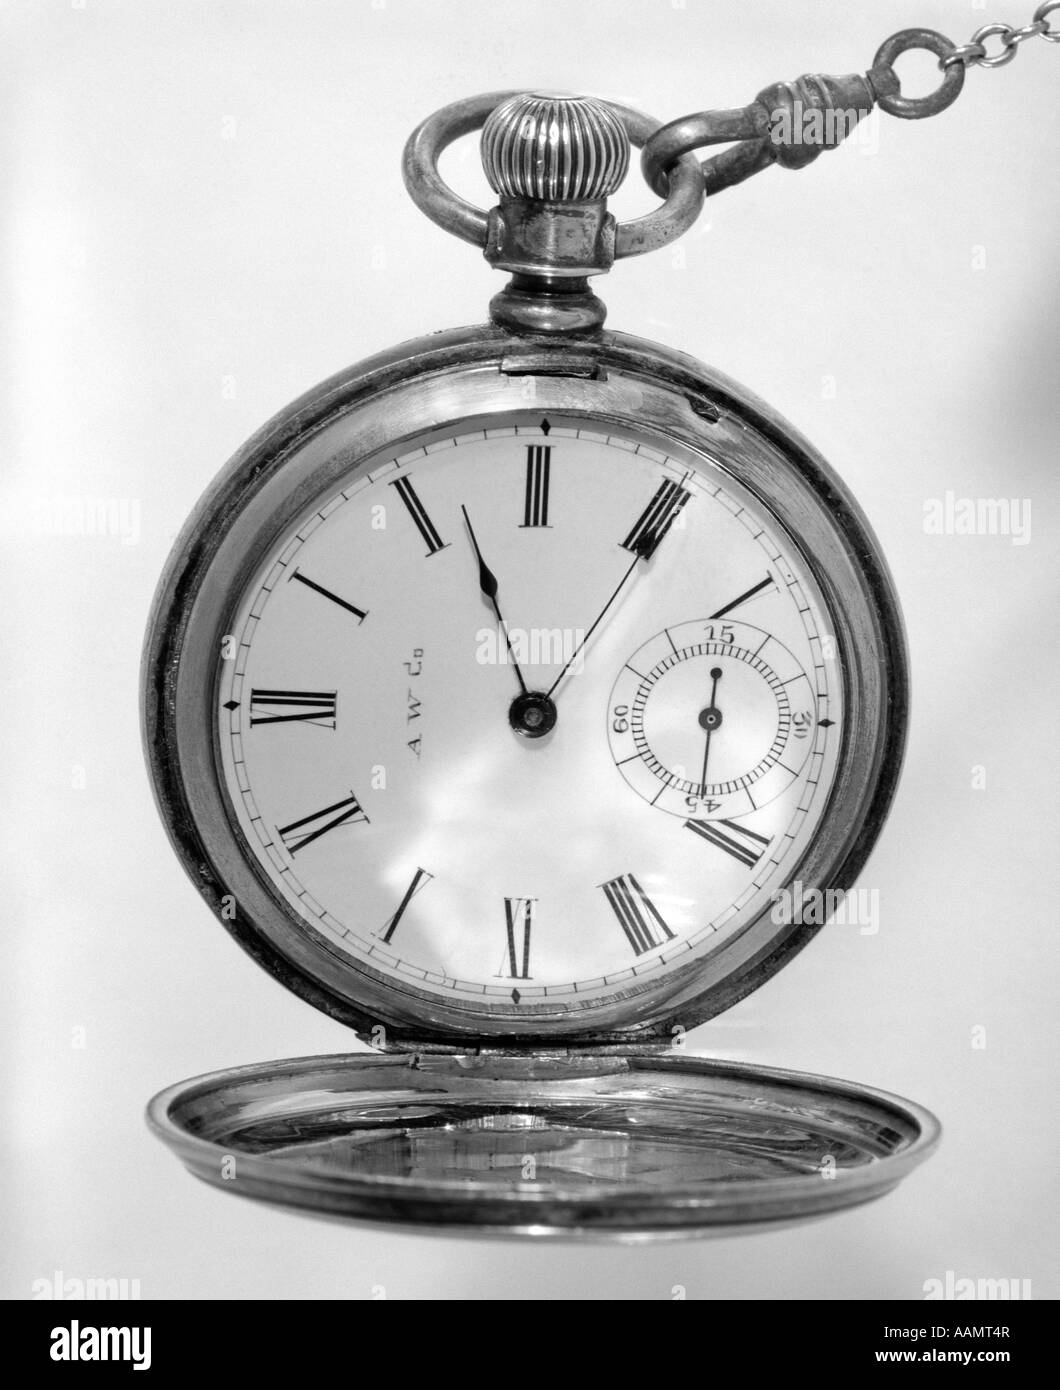 CLOSE-UP OF OPEN POCKET WATCH - Stock Image